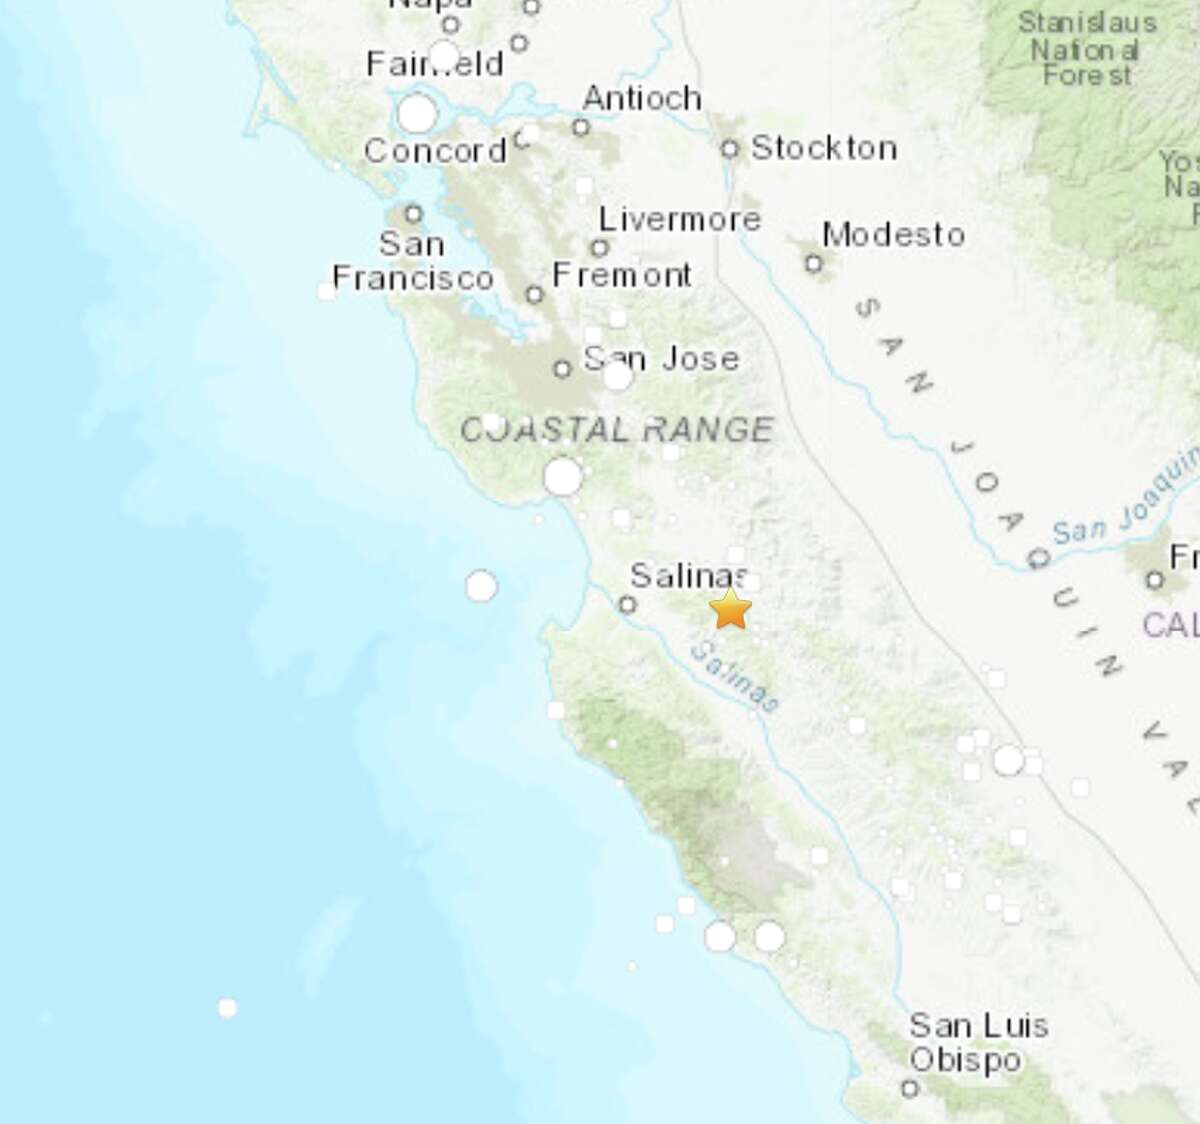 A magnitude 3.5 earthquake shook the area near Pinnacles, California in the early morning on October 29, 2019.